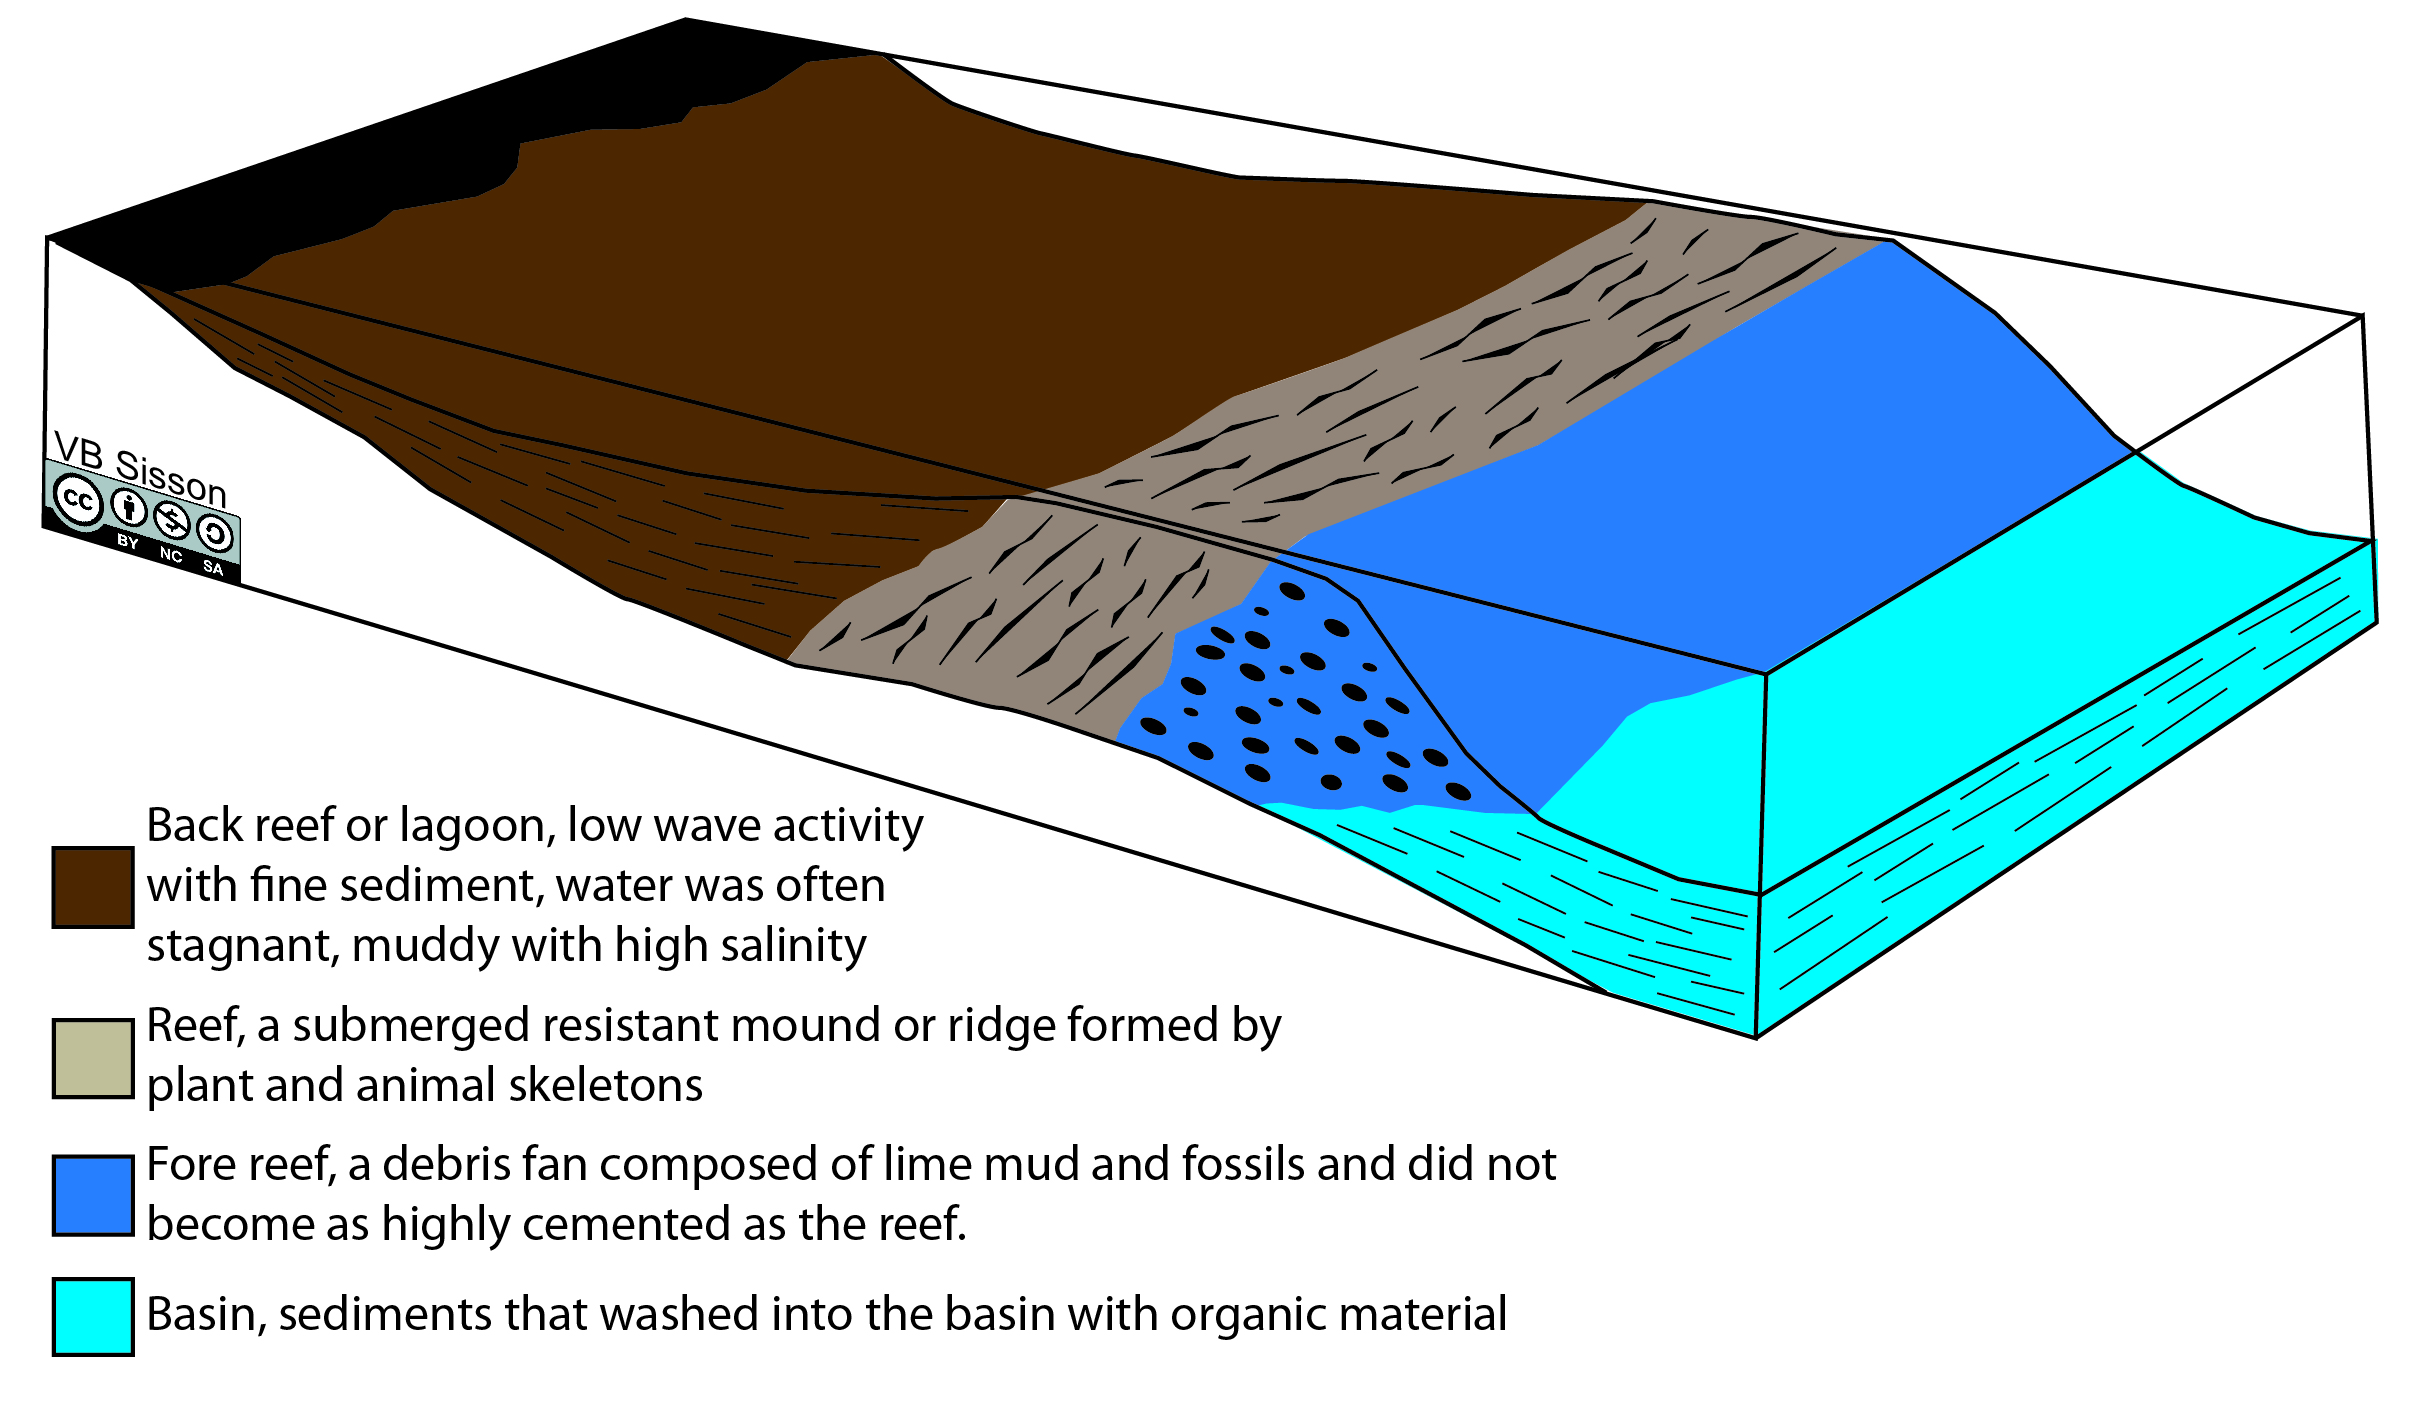 Structure of Devonian reef